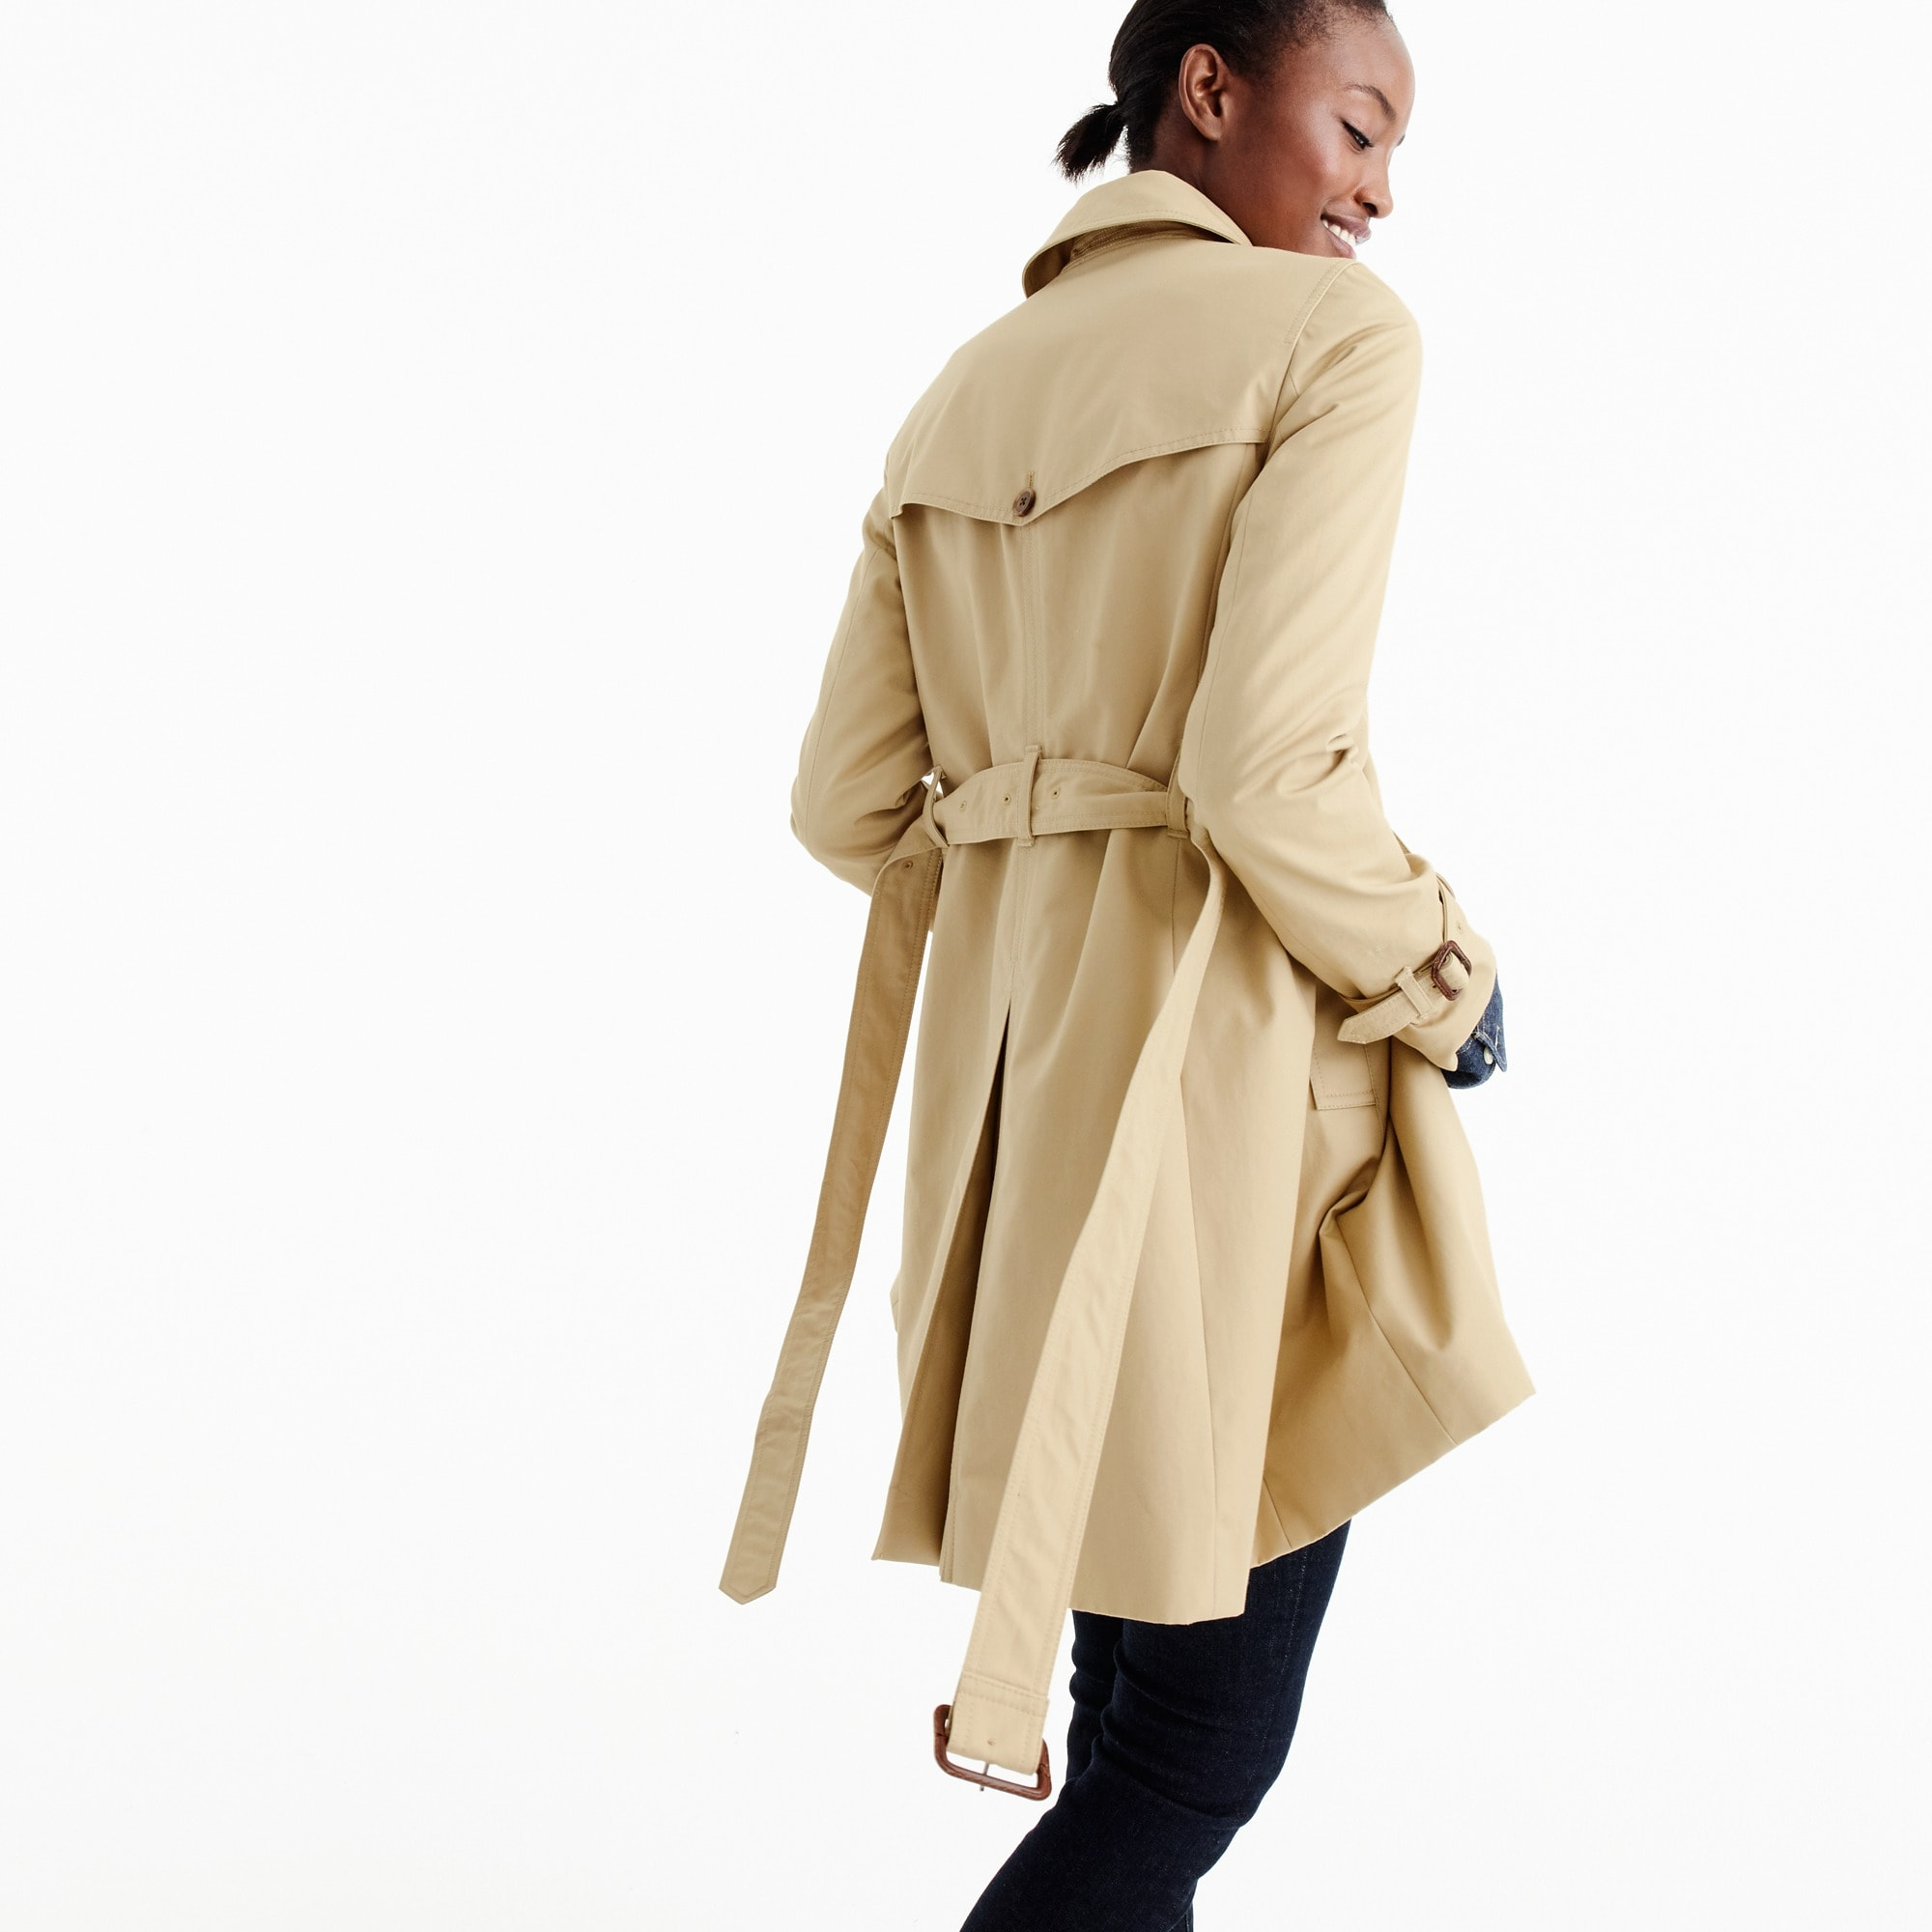 Image 5 for Icon trench coat